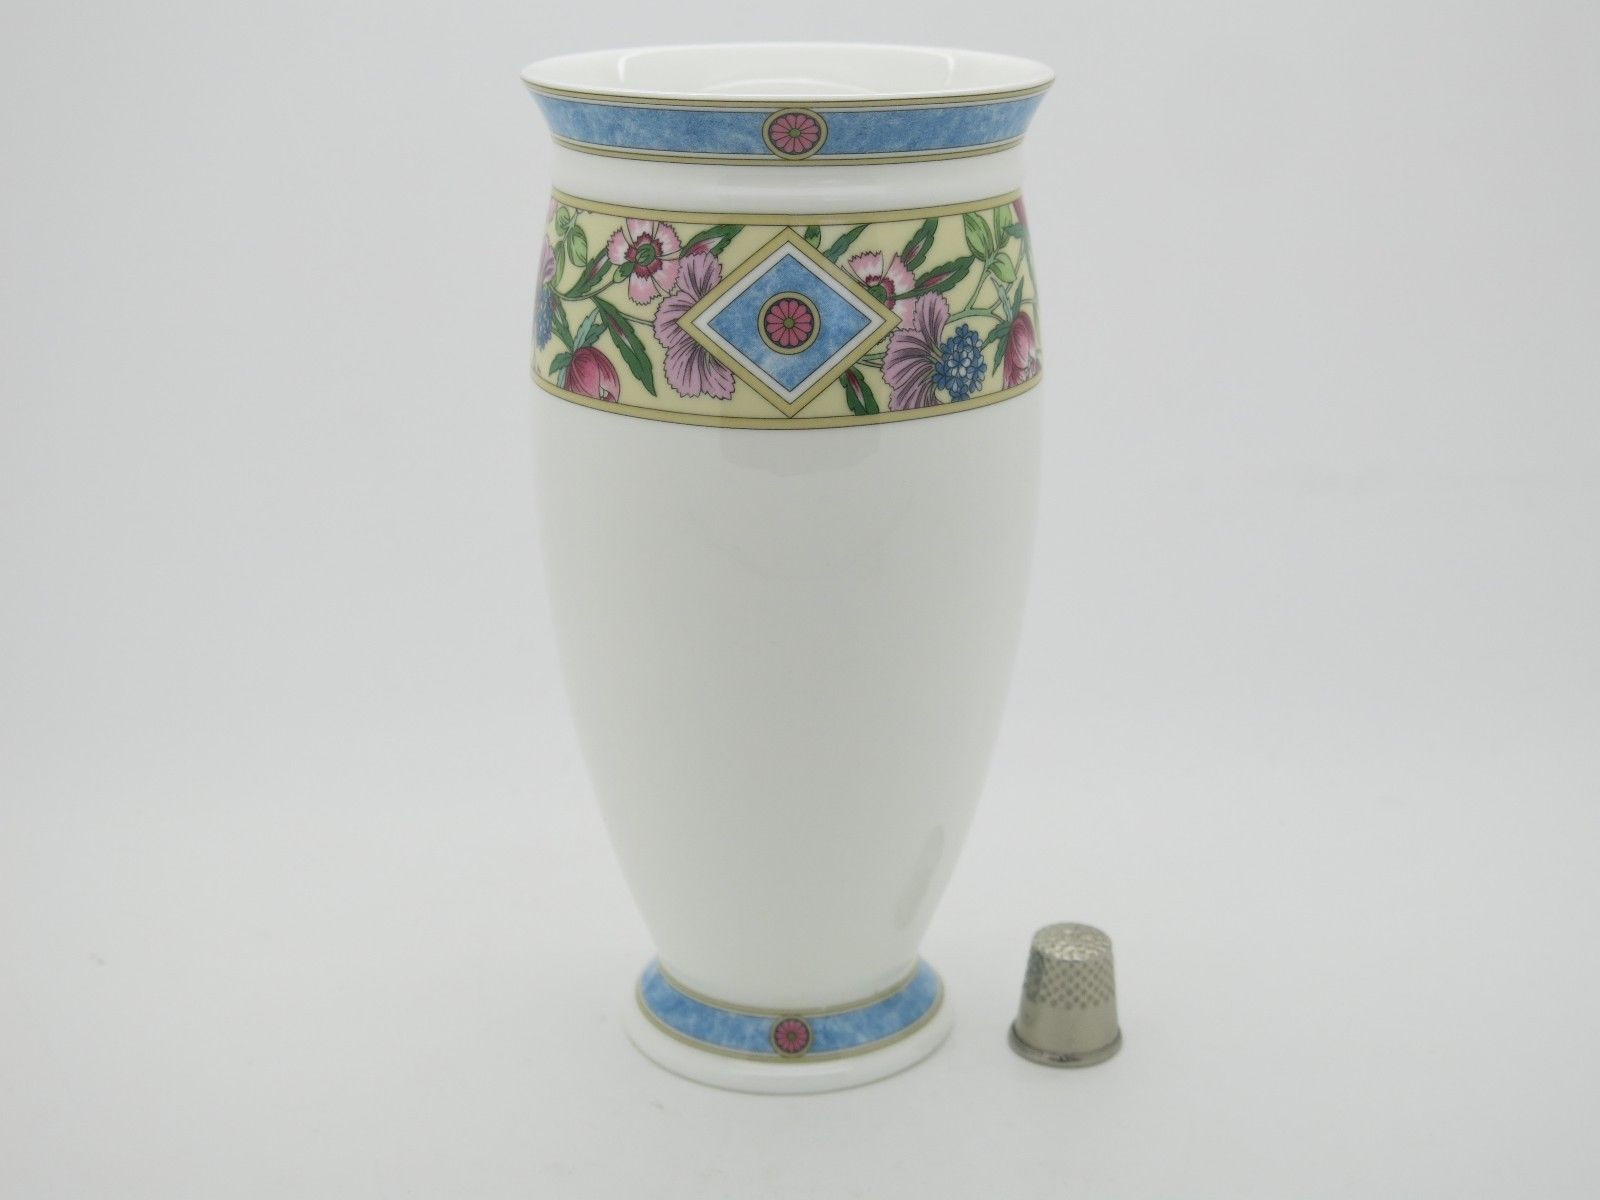 Wedgwood Kutani Crane Bud Vase Of Wedgwood Sarah Pattern Tall Vase Excellent Free Gift Box Inside 1 Of 4only 1 Available